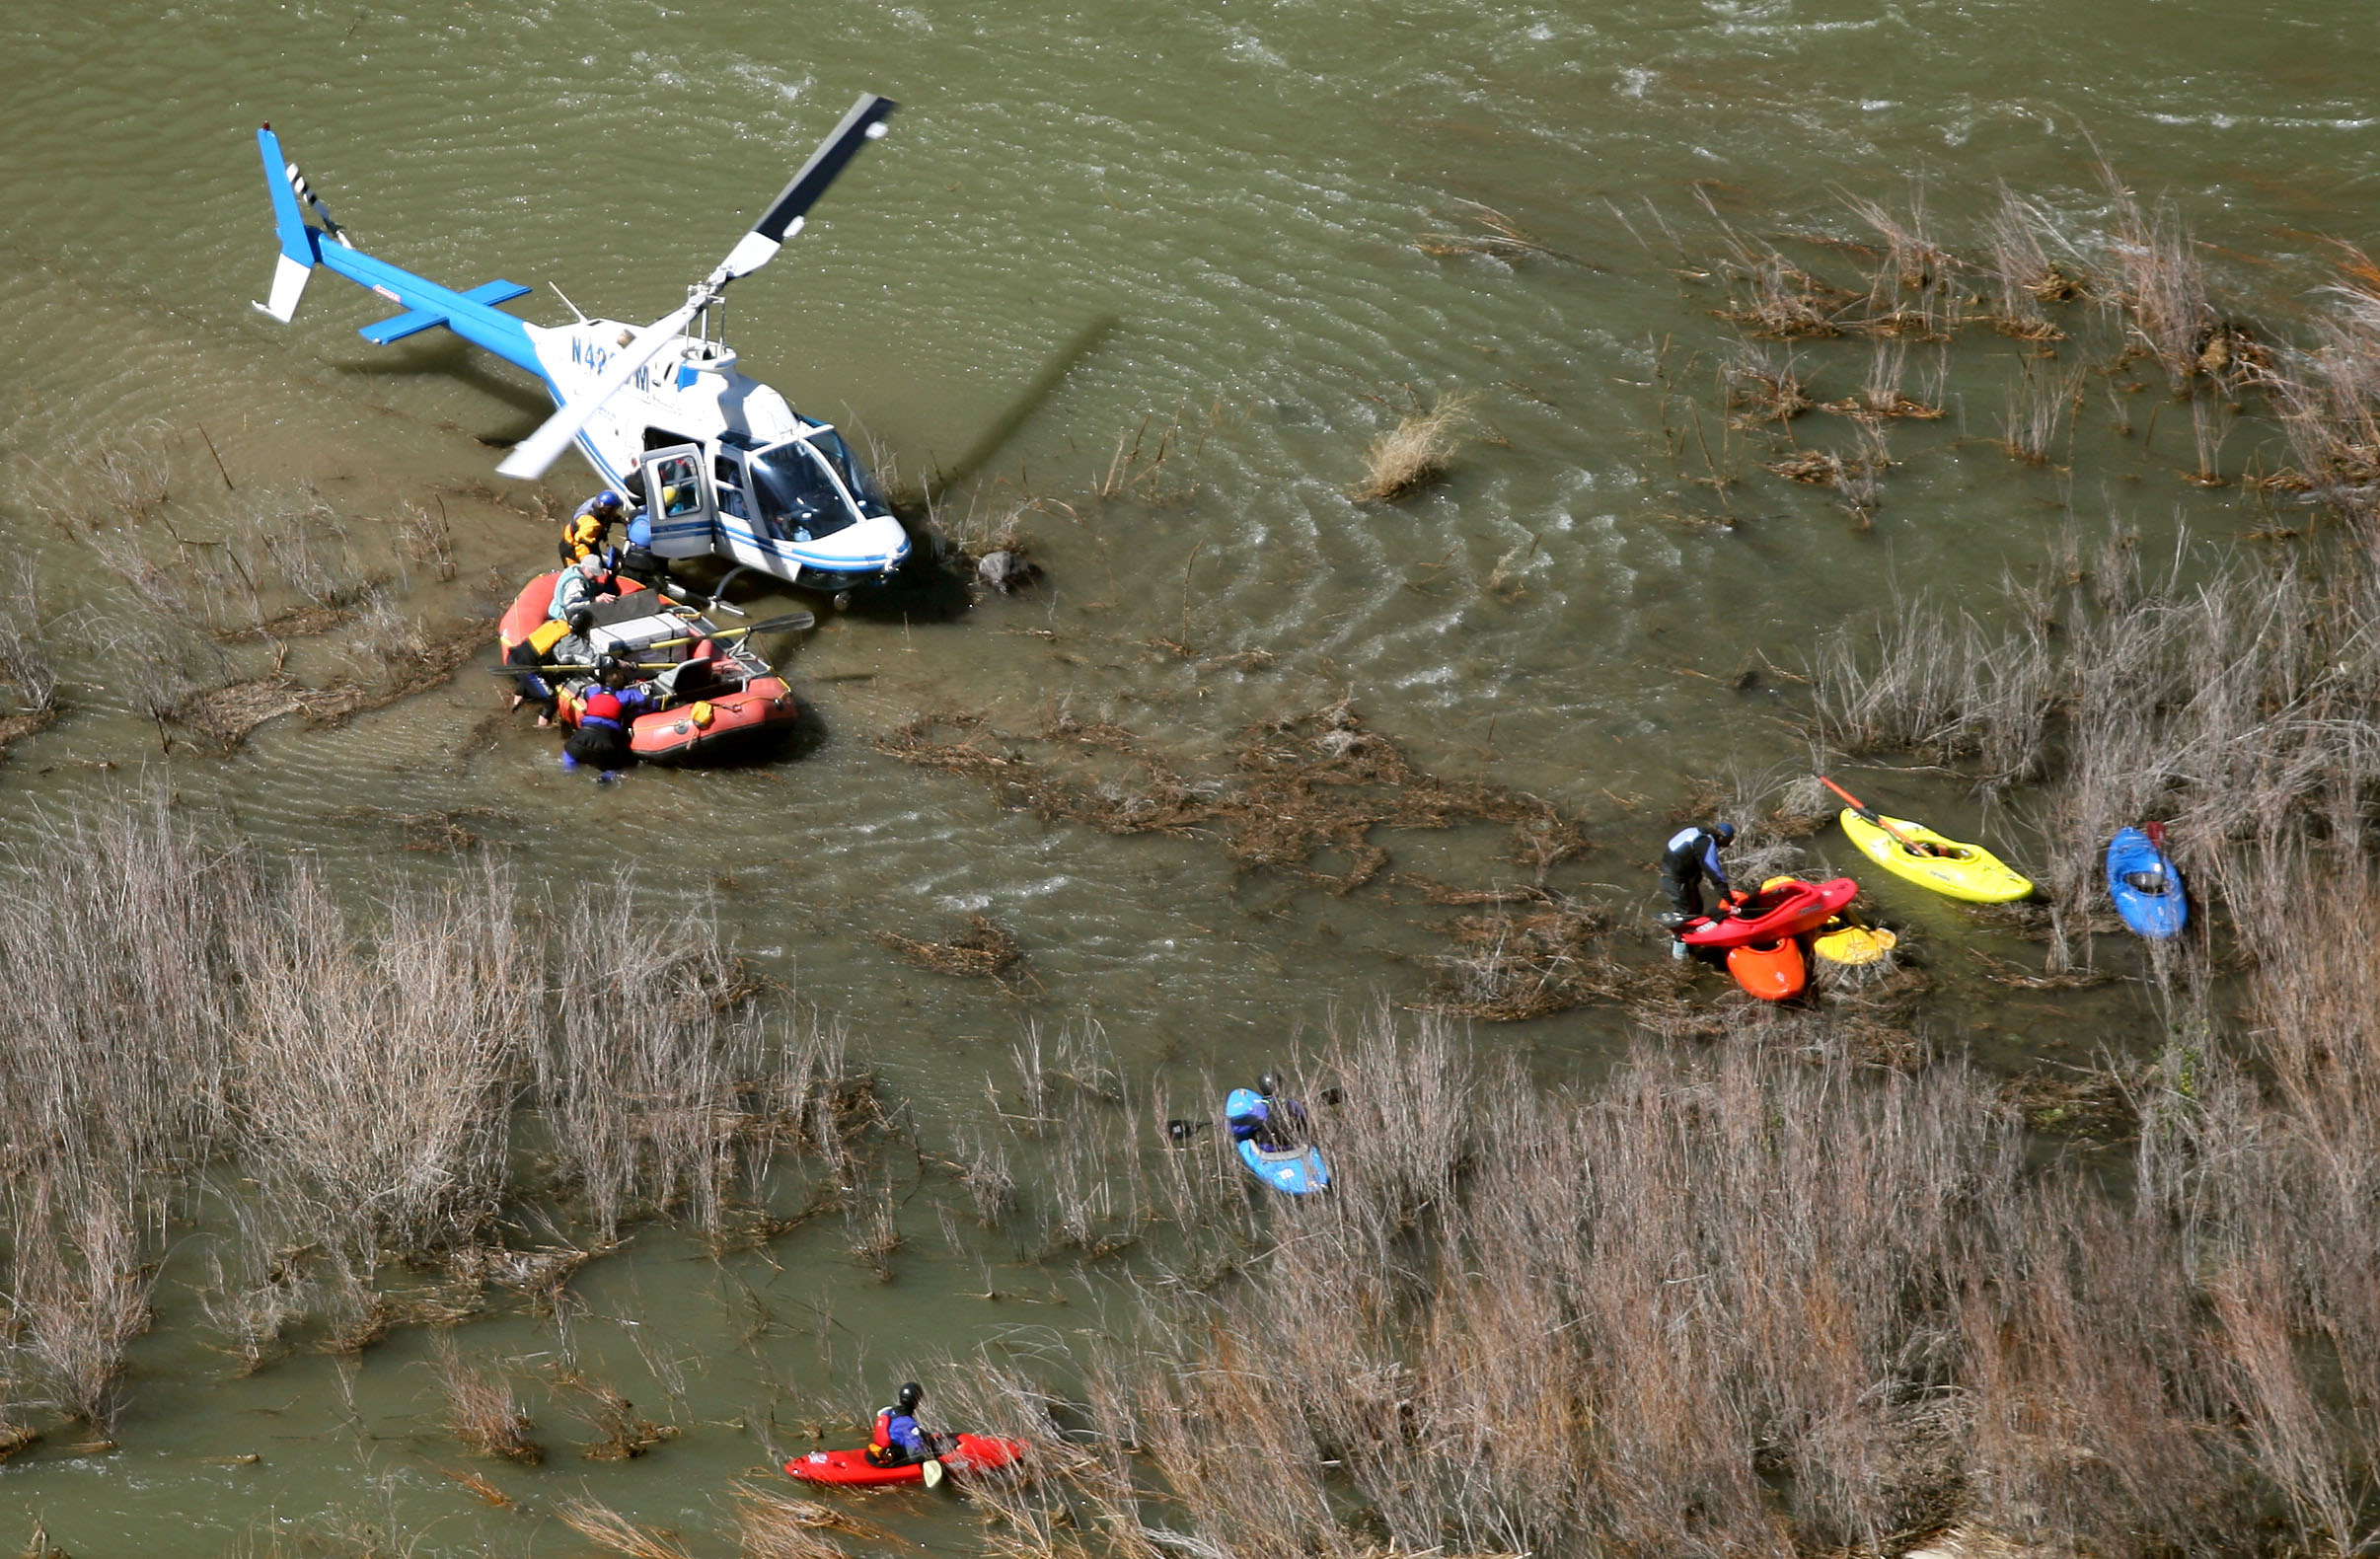 Rafter killed in accident on Snake River   The Spokesman ...